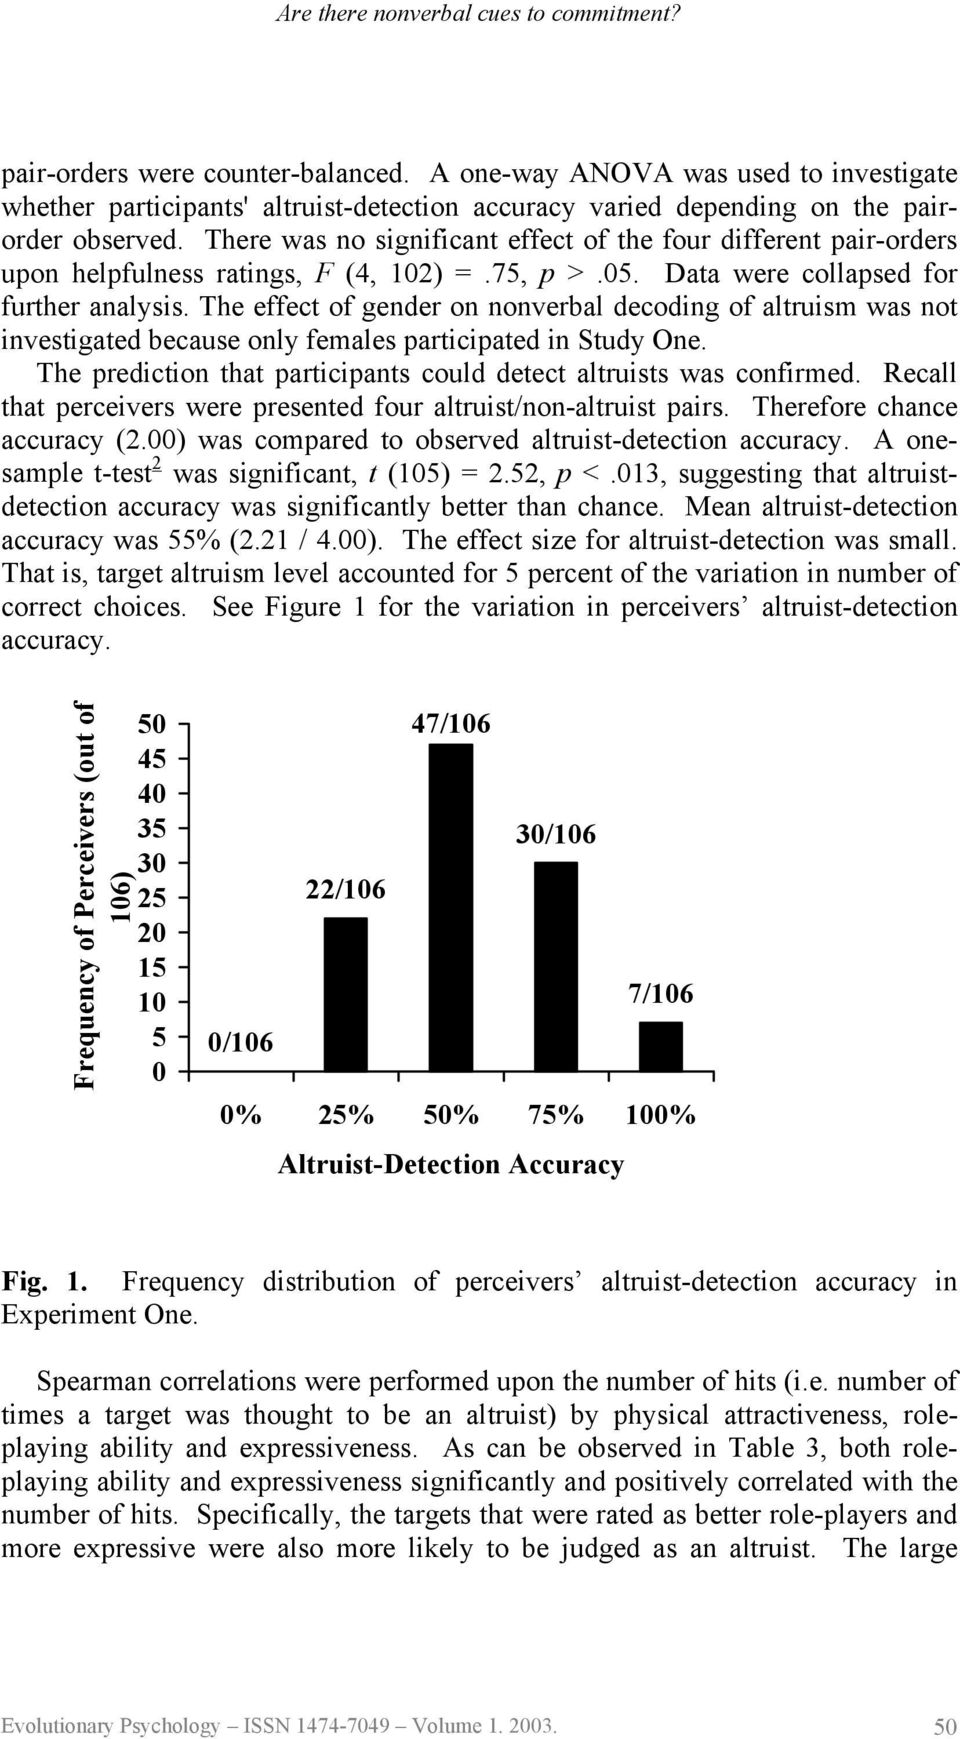 The effect of gender on nonverbal decoding of altruism was not investigated because only females participated in Study One. The prediction that participants could detect altruists was confirmed.